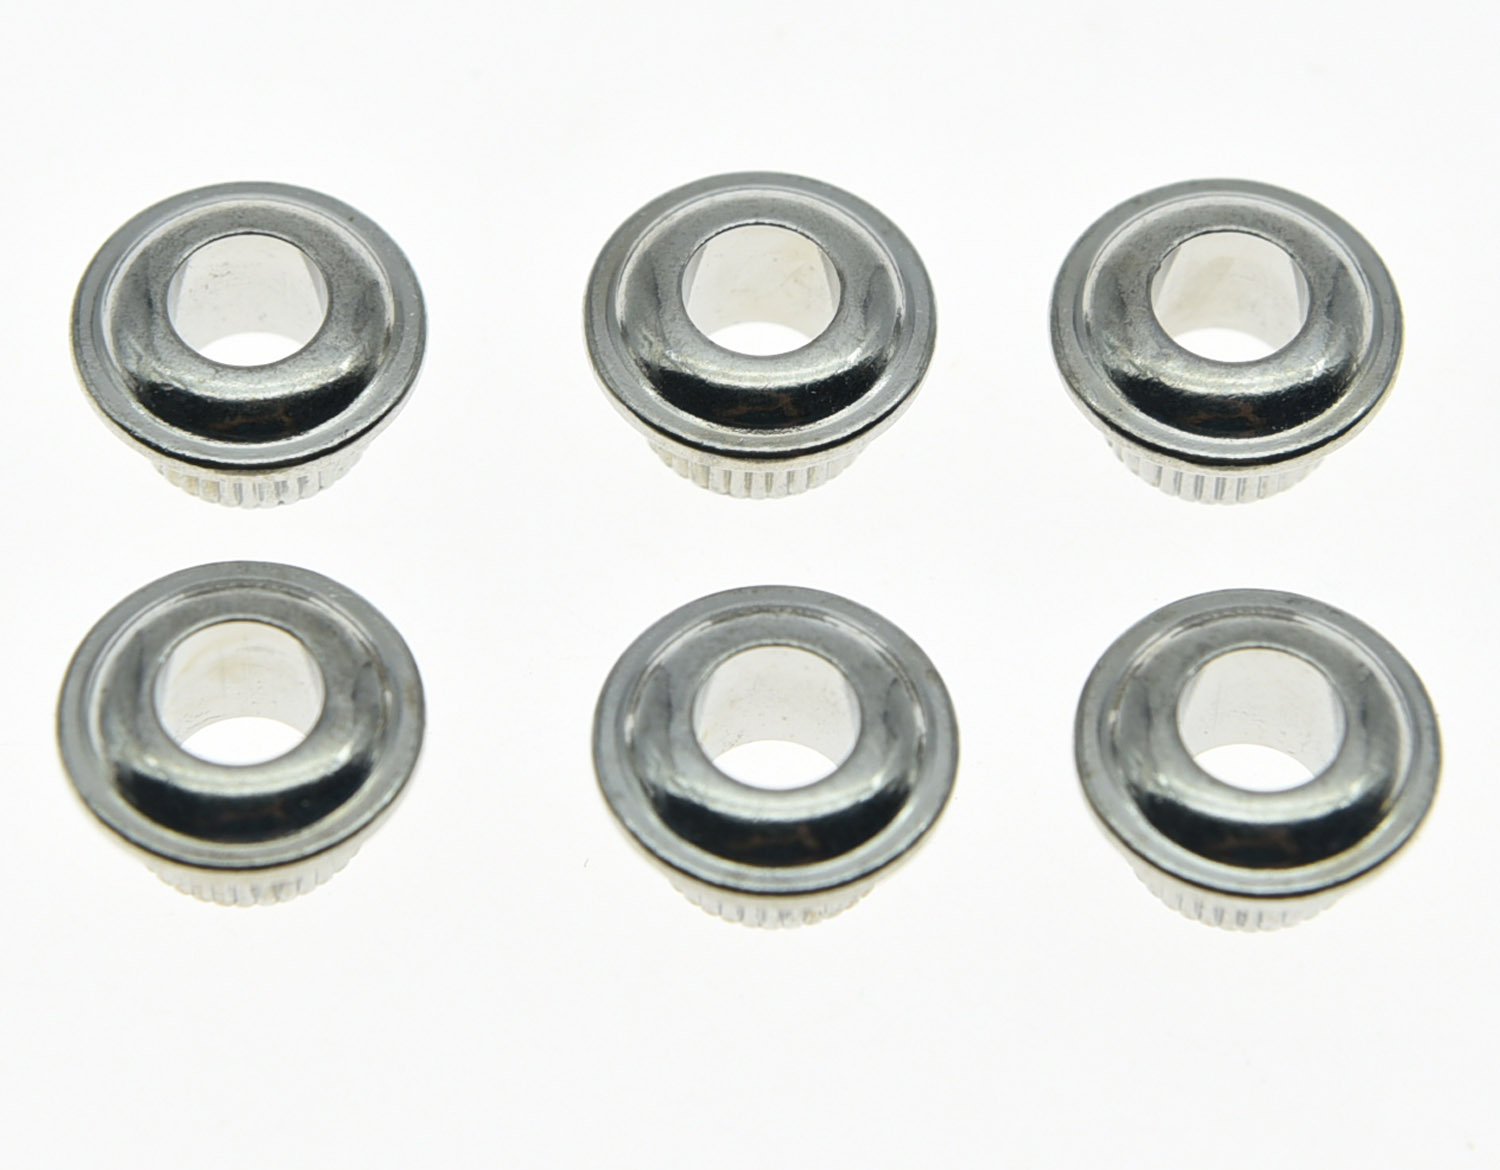 KAISH 30x Chrome 10mm Metal Vintage Guitar Tuner Conversion Bushings Adapter Ferrules ...